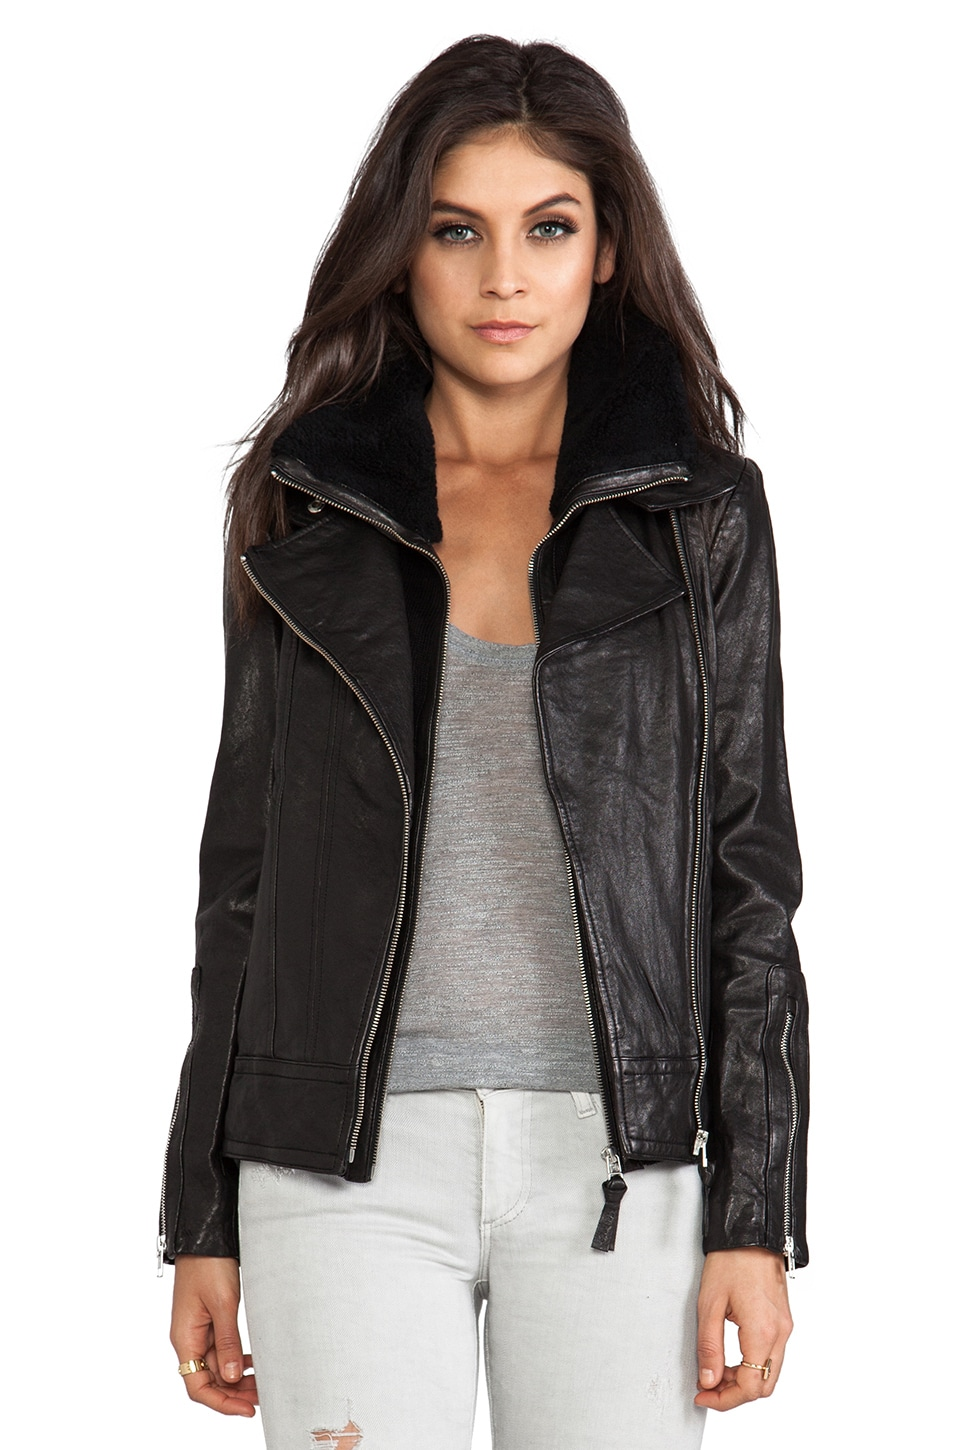 Mackage Veruca Distressed Leather Jacket in Black